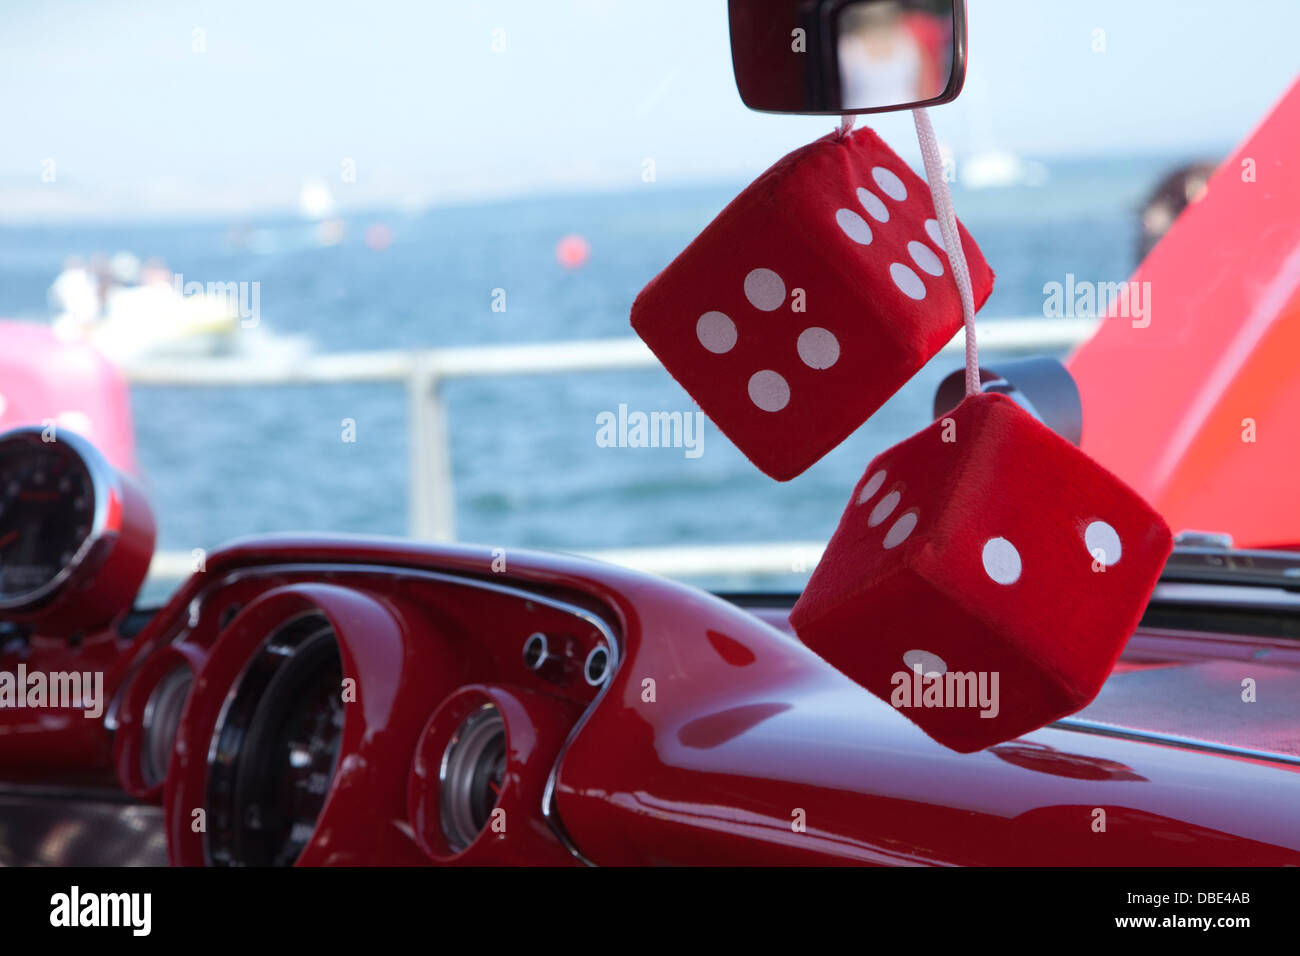 Fluffy red dice on a dash board - Stock Image